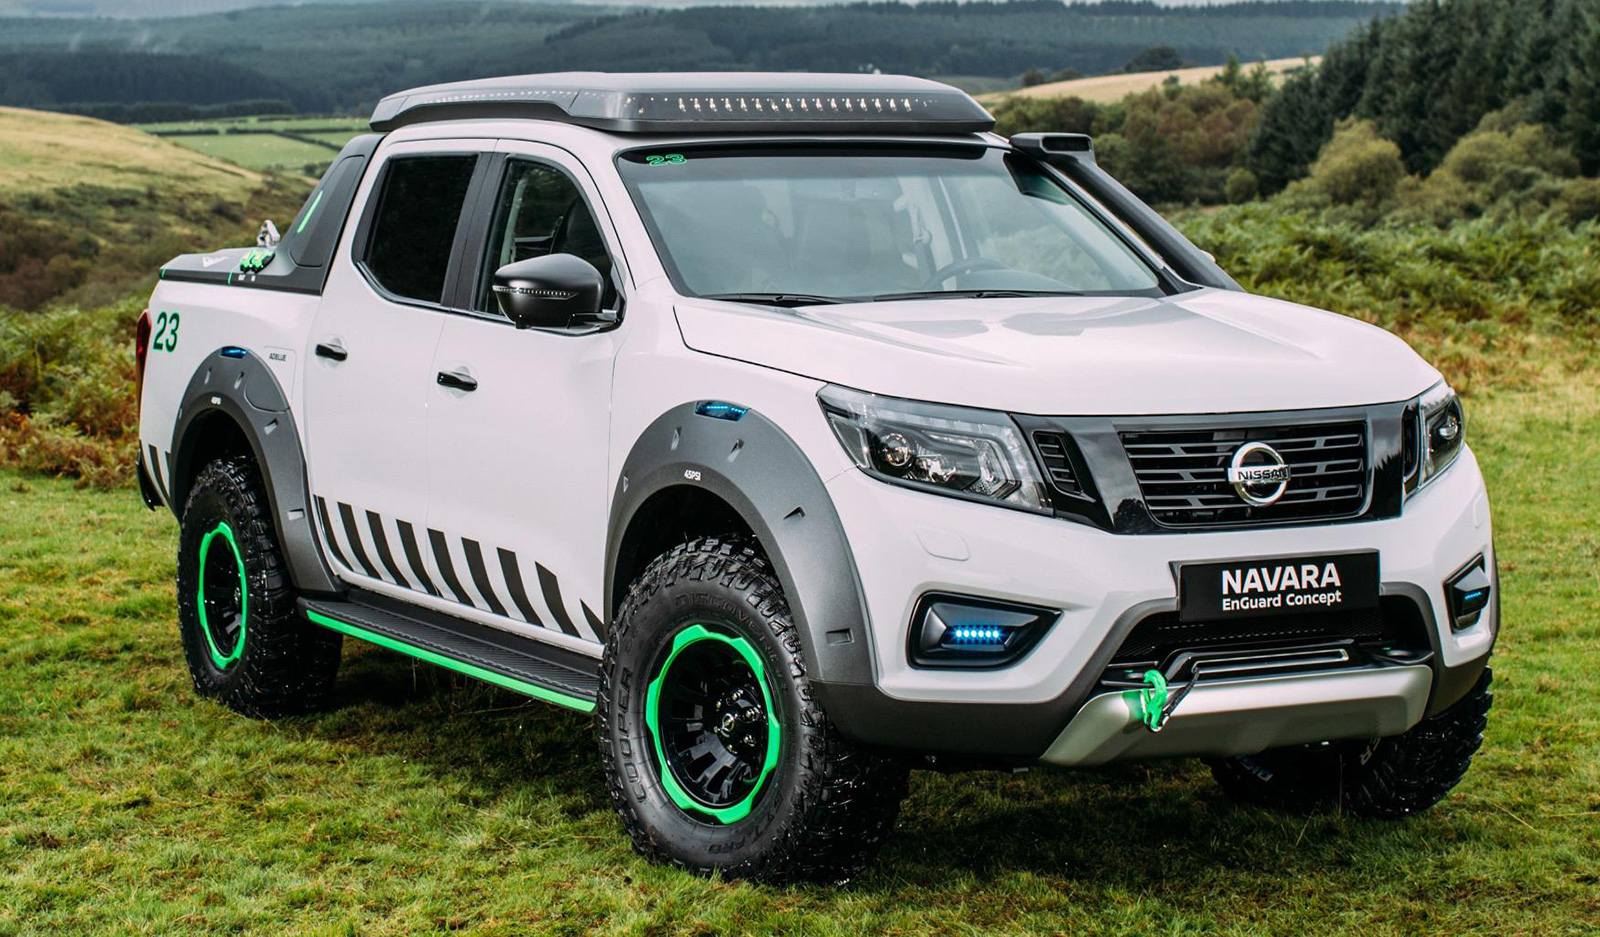 nissan navara enguard concept the ultimate rescue truck with portable ev battery packs drone. Black Bedroom Furniture Sets. Home Design Ideas